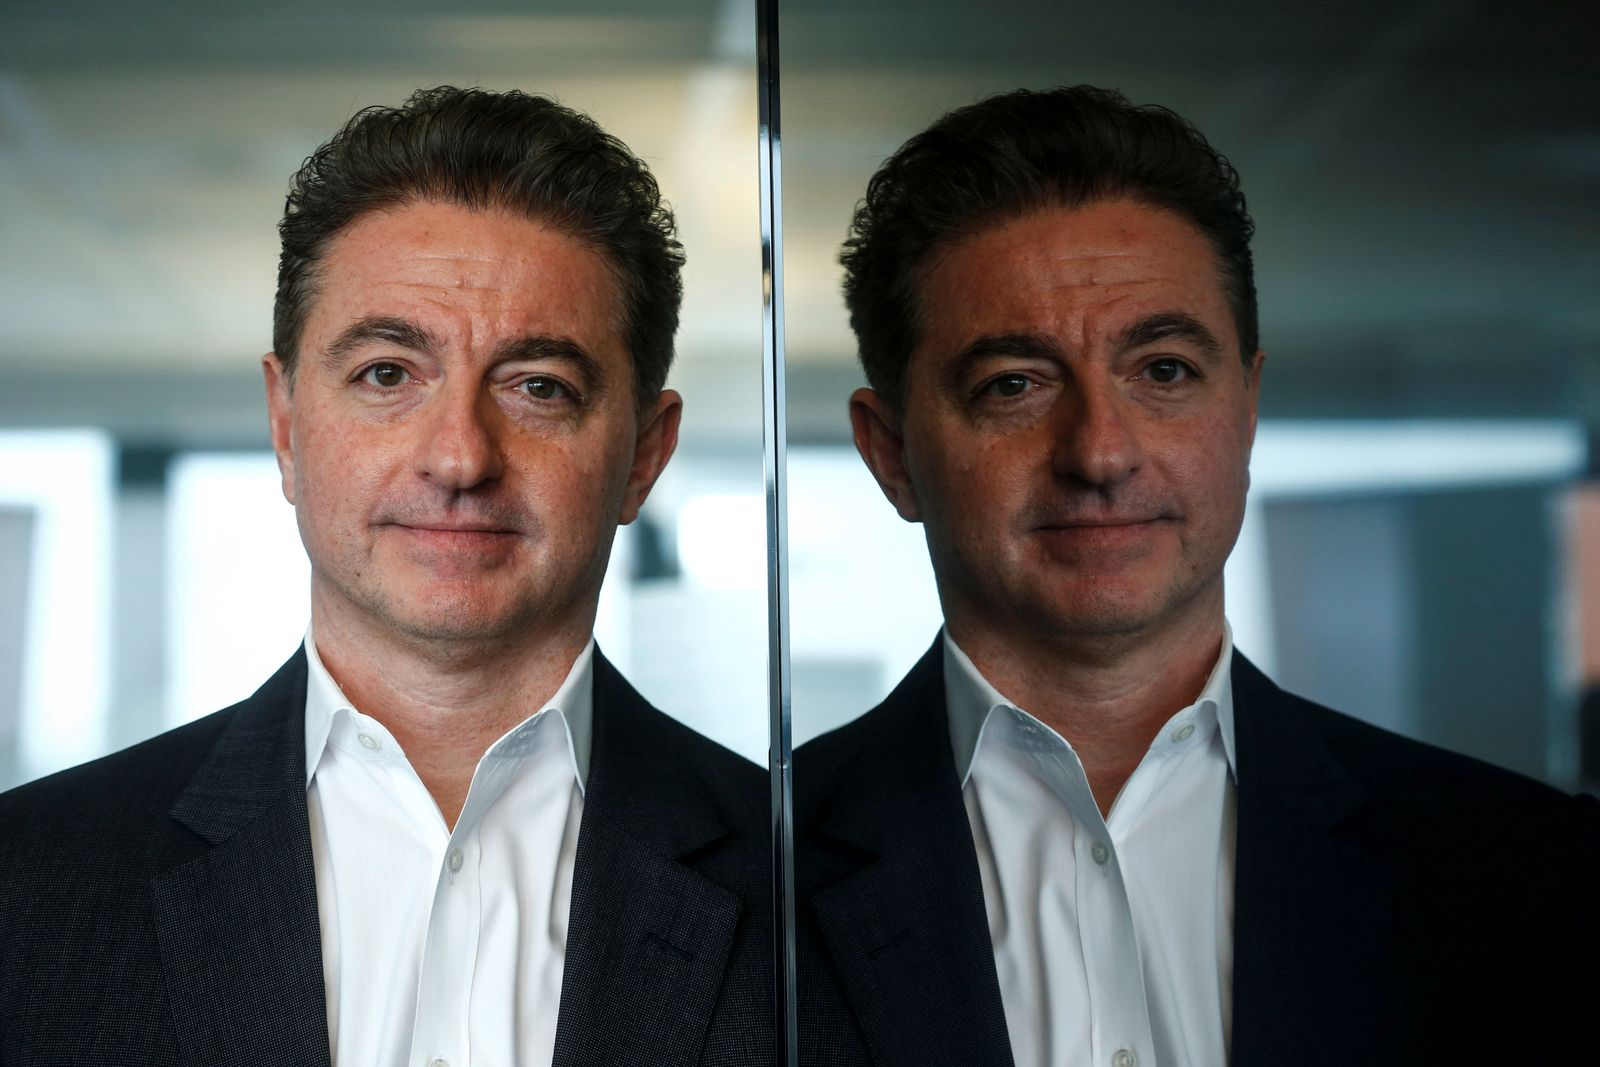 CEO of Deutsche Telekom's T-Systems, Al-Saleh poses prior to an interview with Reuters in Frankfurt